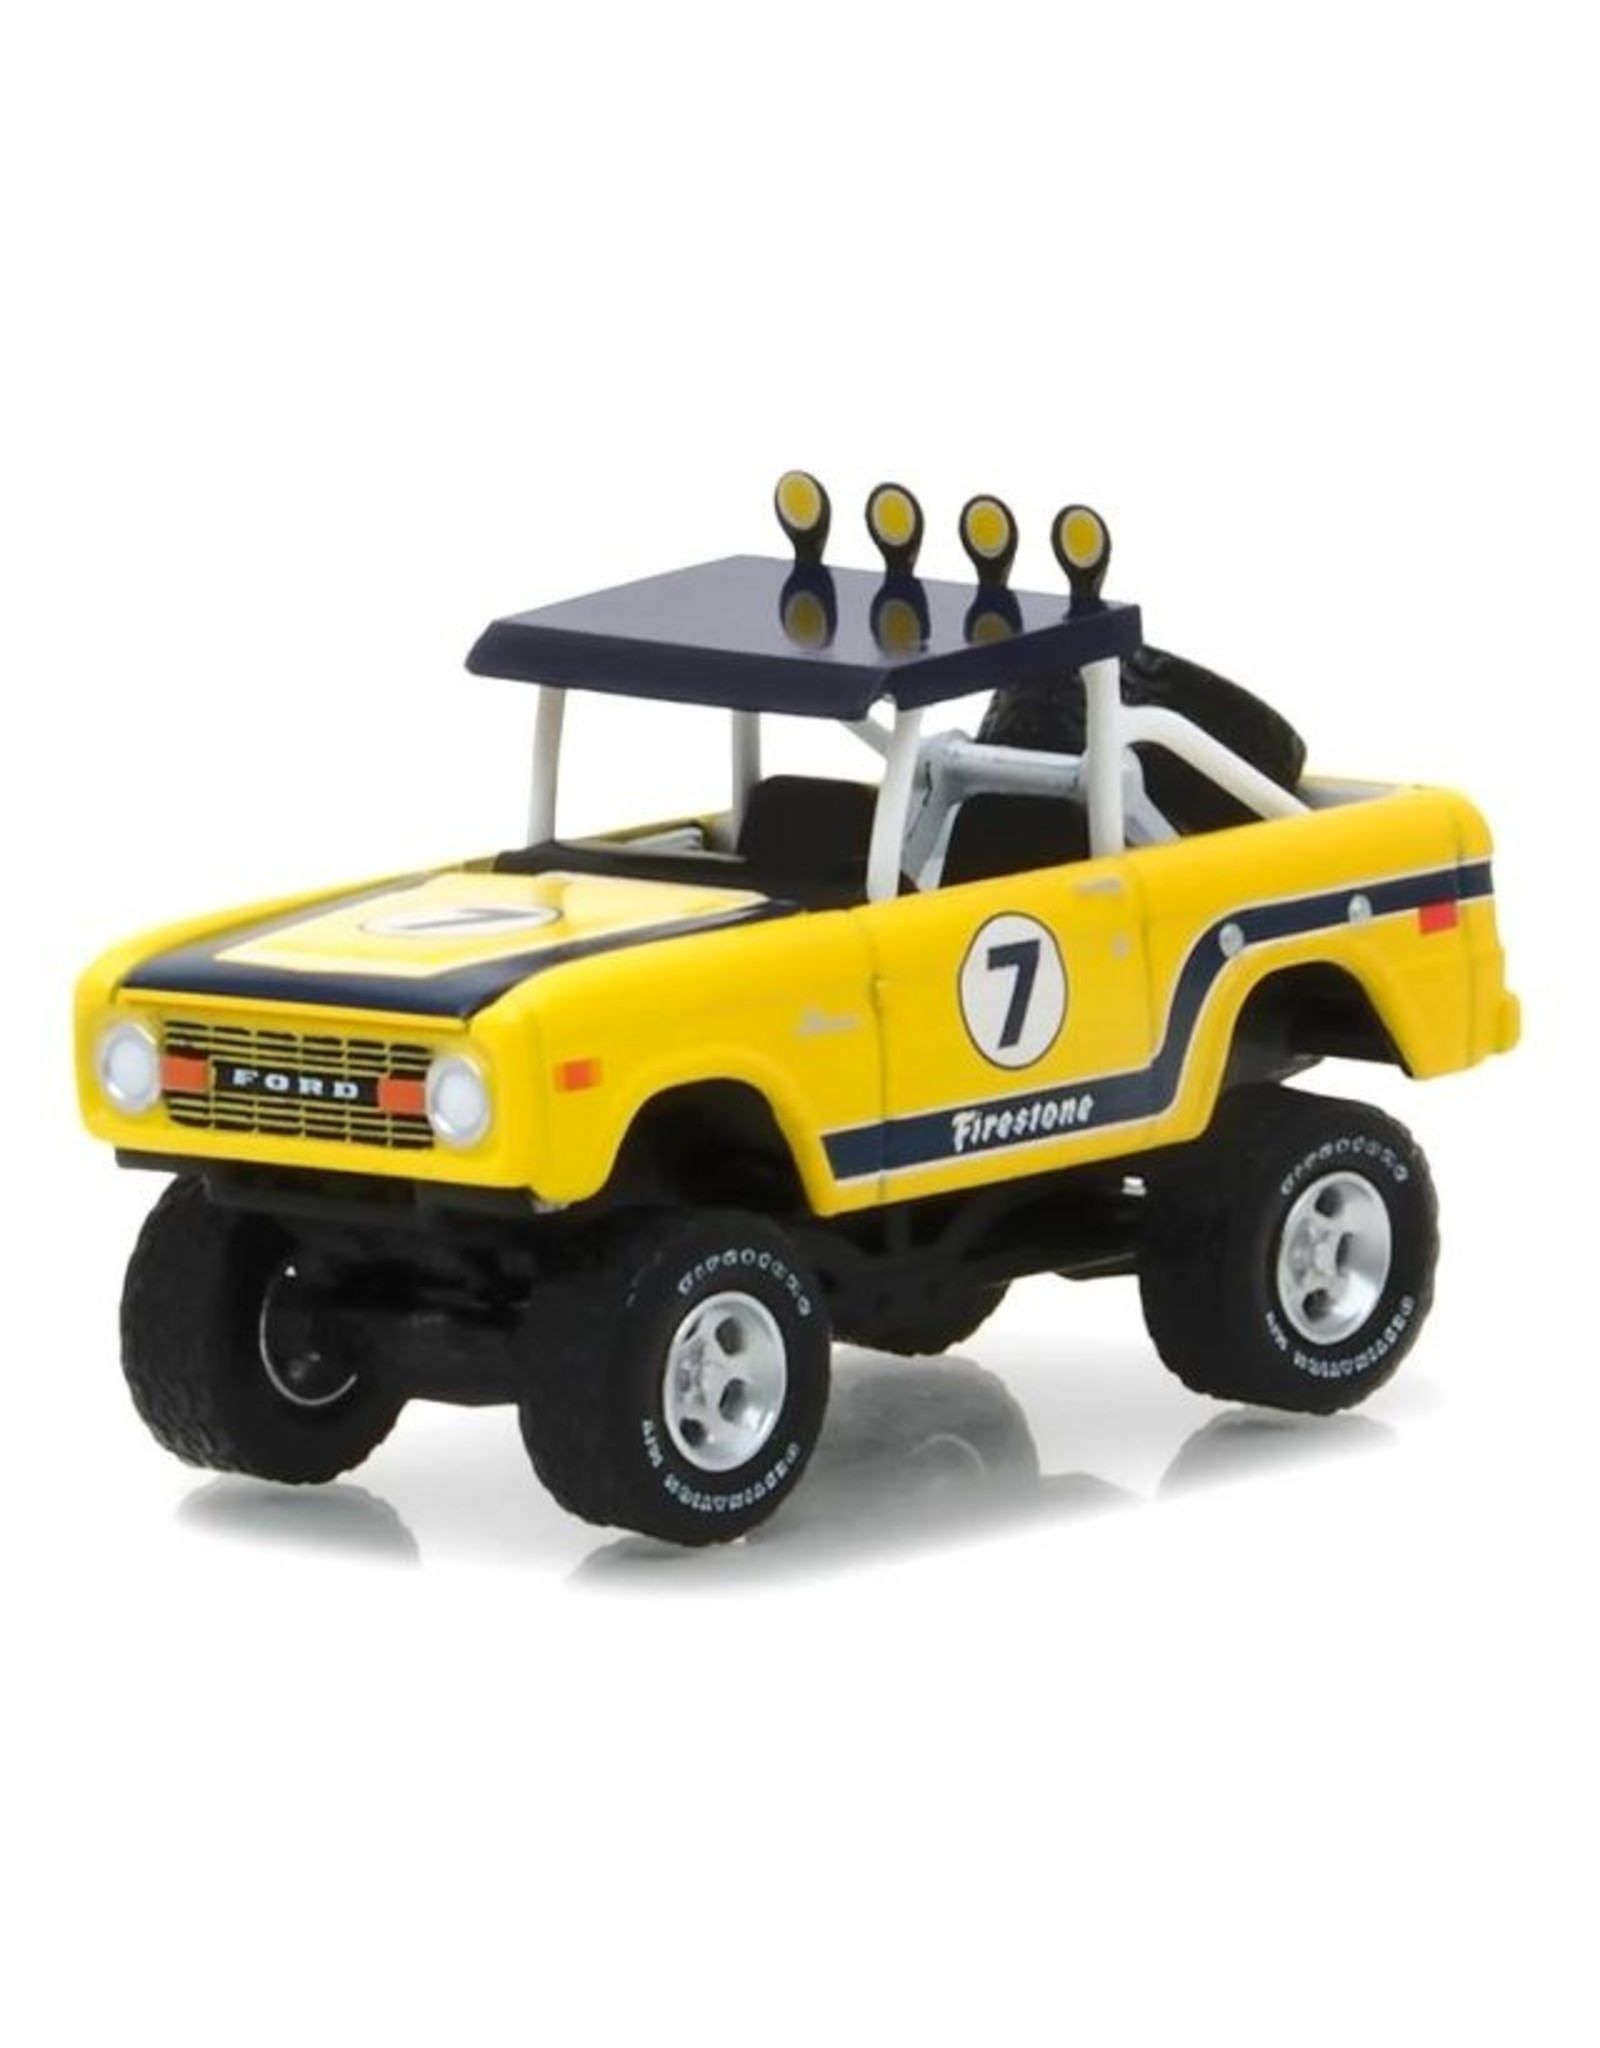 Ford USA FORD BRONCO BAJA  OPEN #7 FIRESTONE